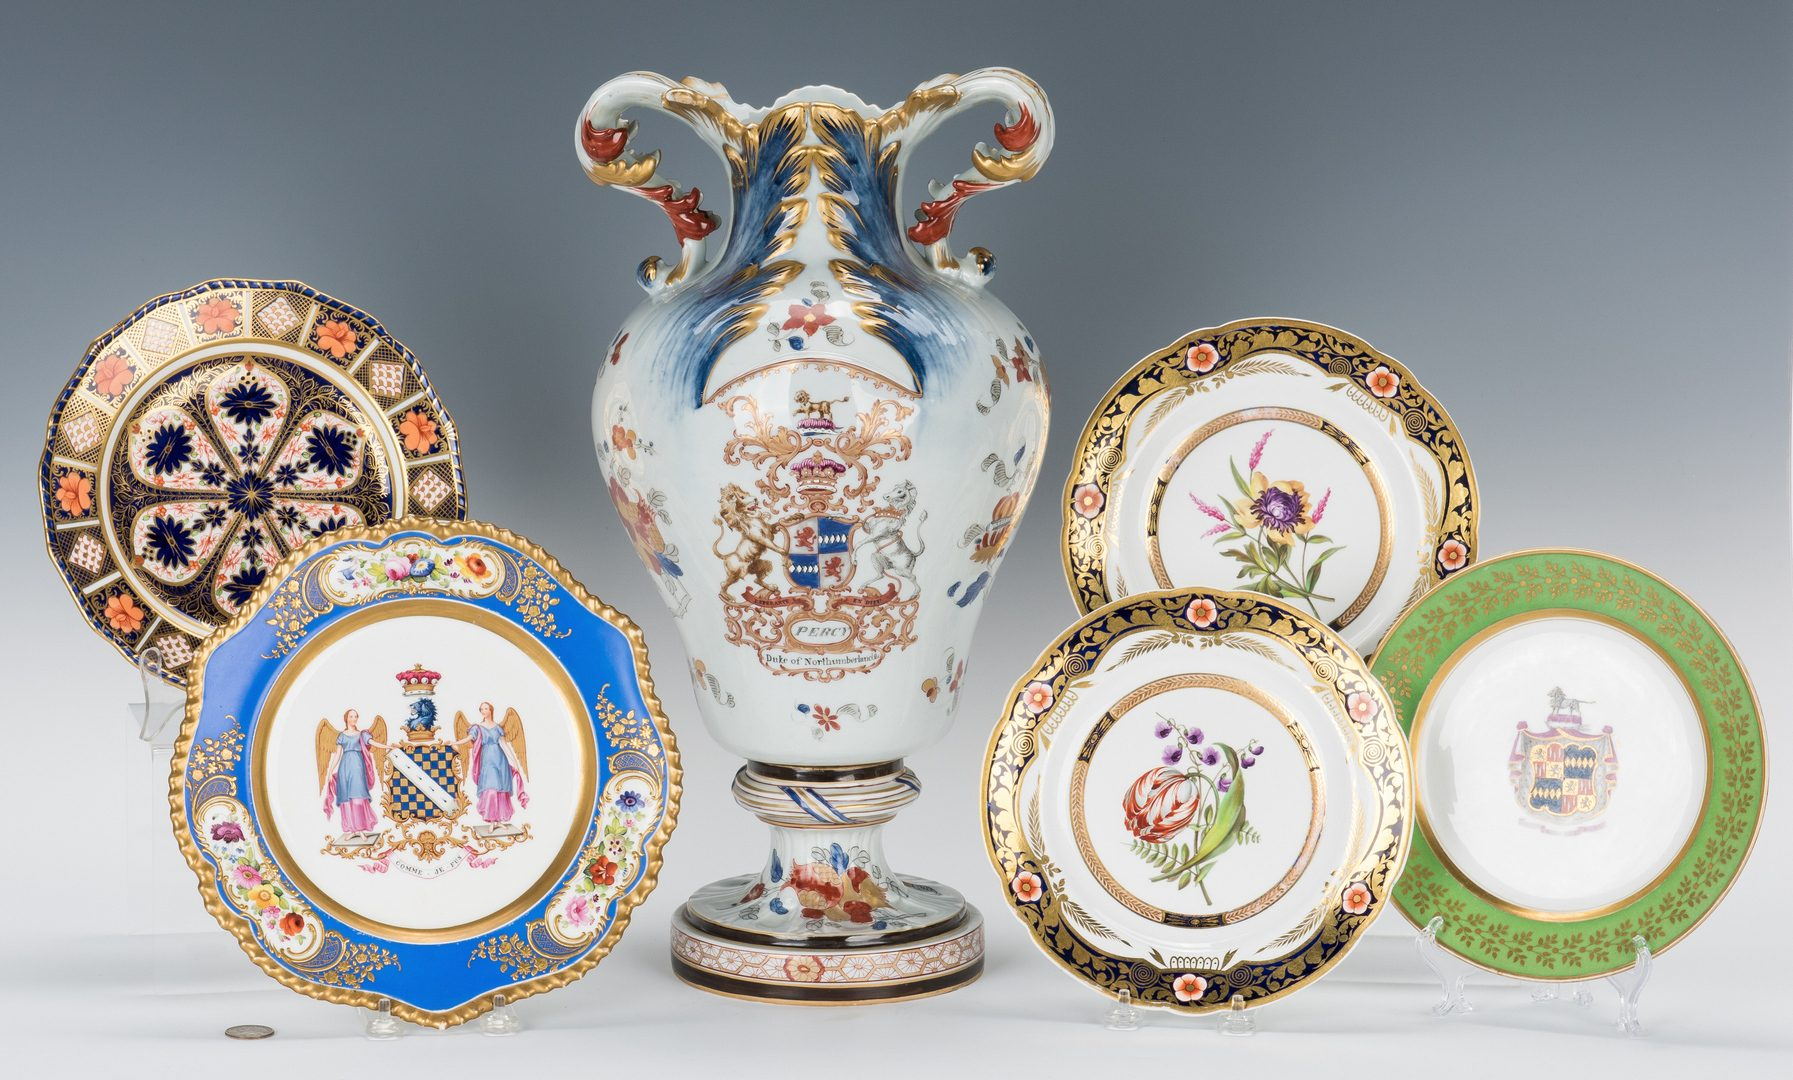 Lot 254: Armorial Urn, Plates incl. Northumberland